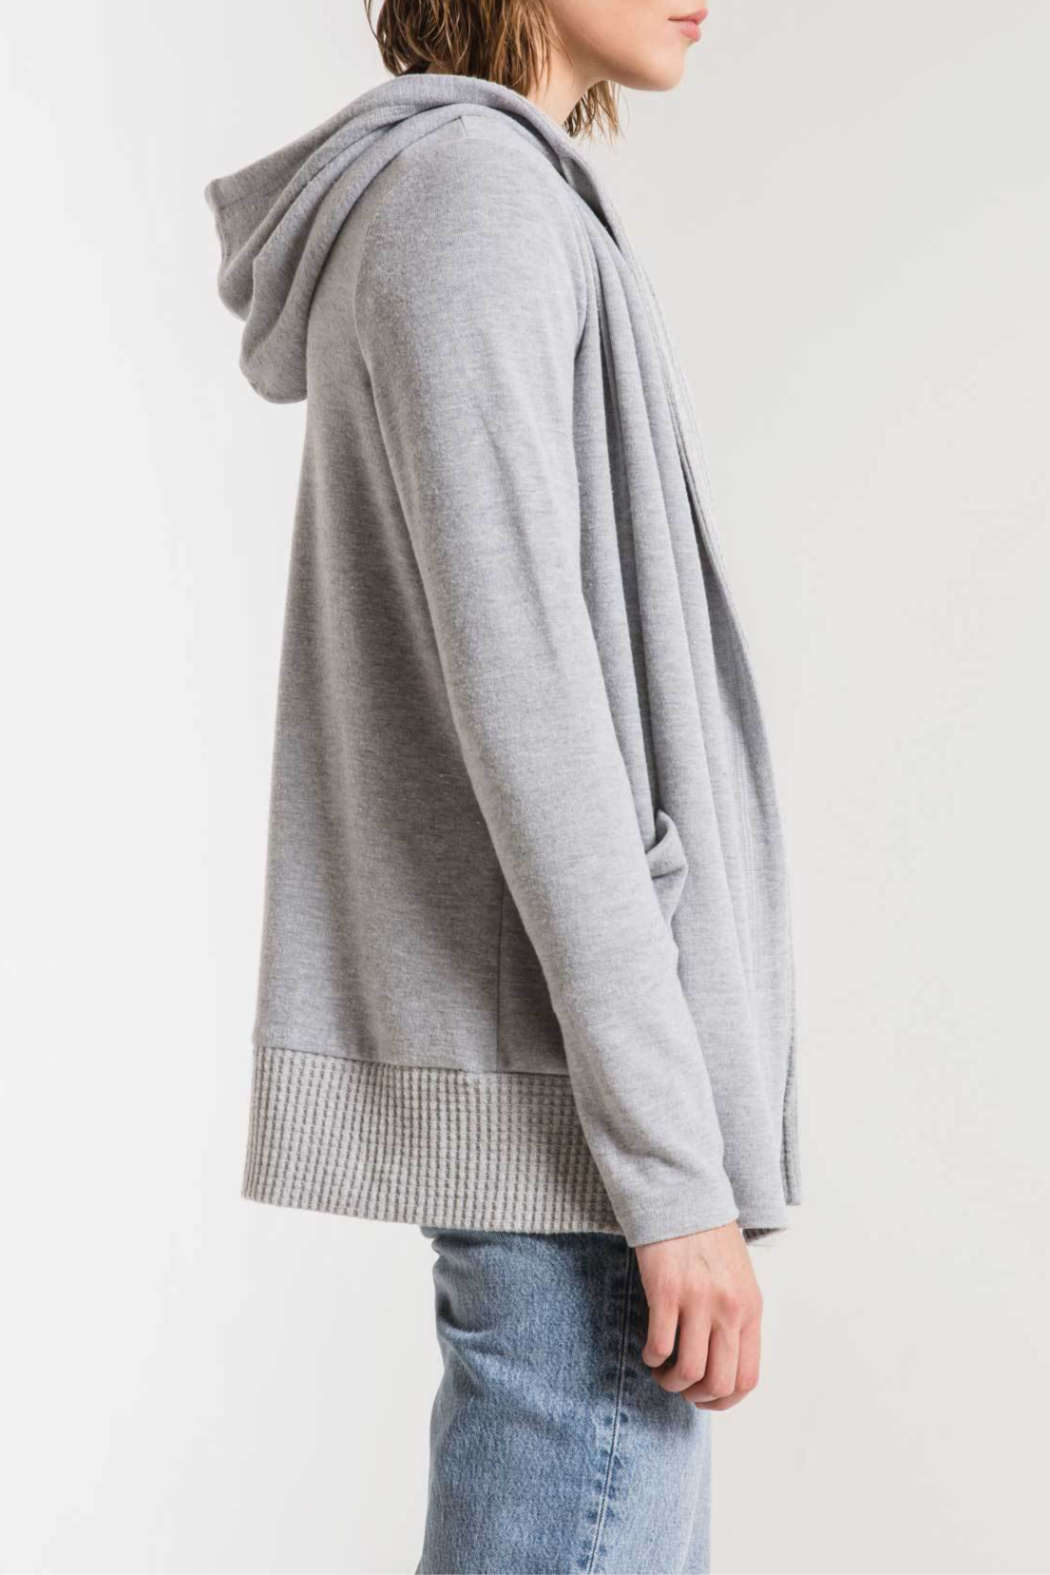 z supply Thermal Lined Soft Spun Cardigan - Front Full Image